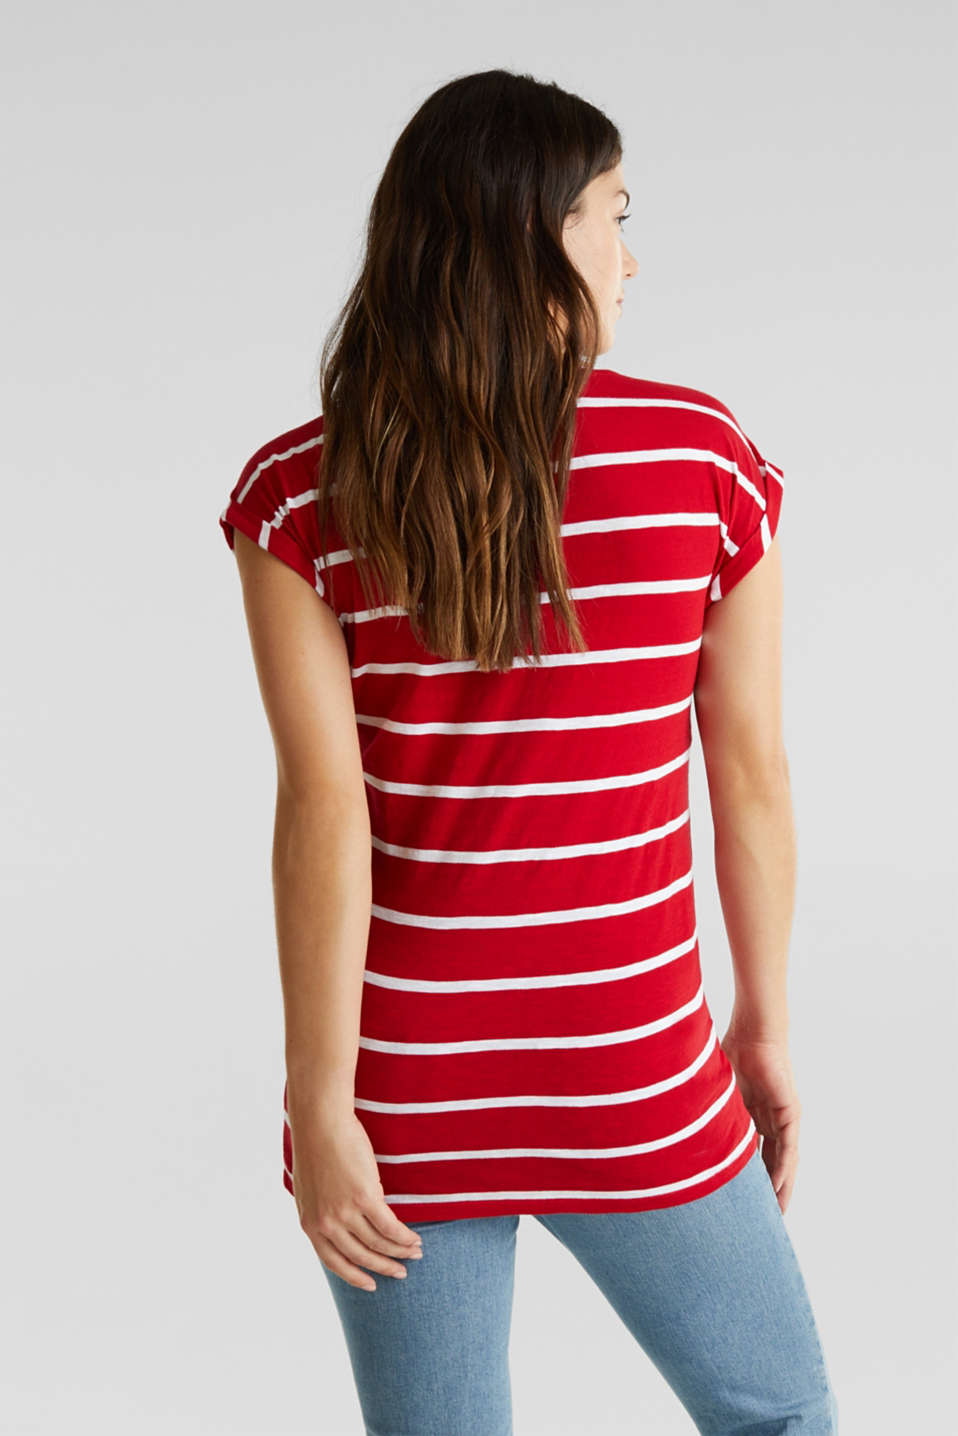 T-shirt with stripes, 100% cotton, LCRED, detail image number 3